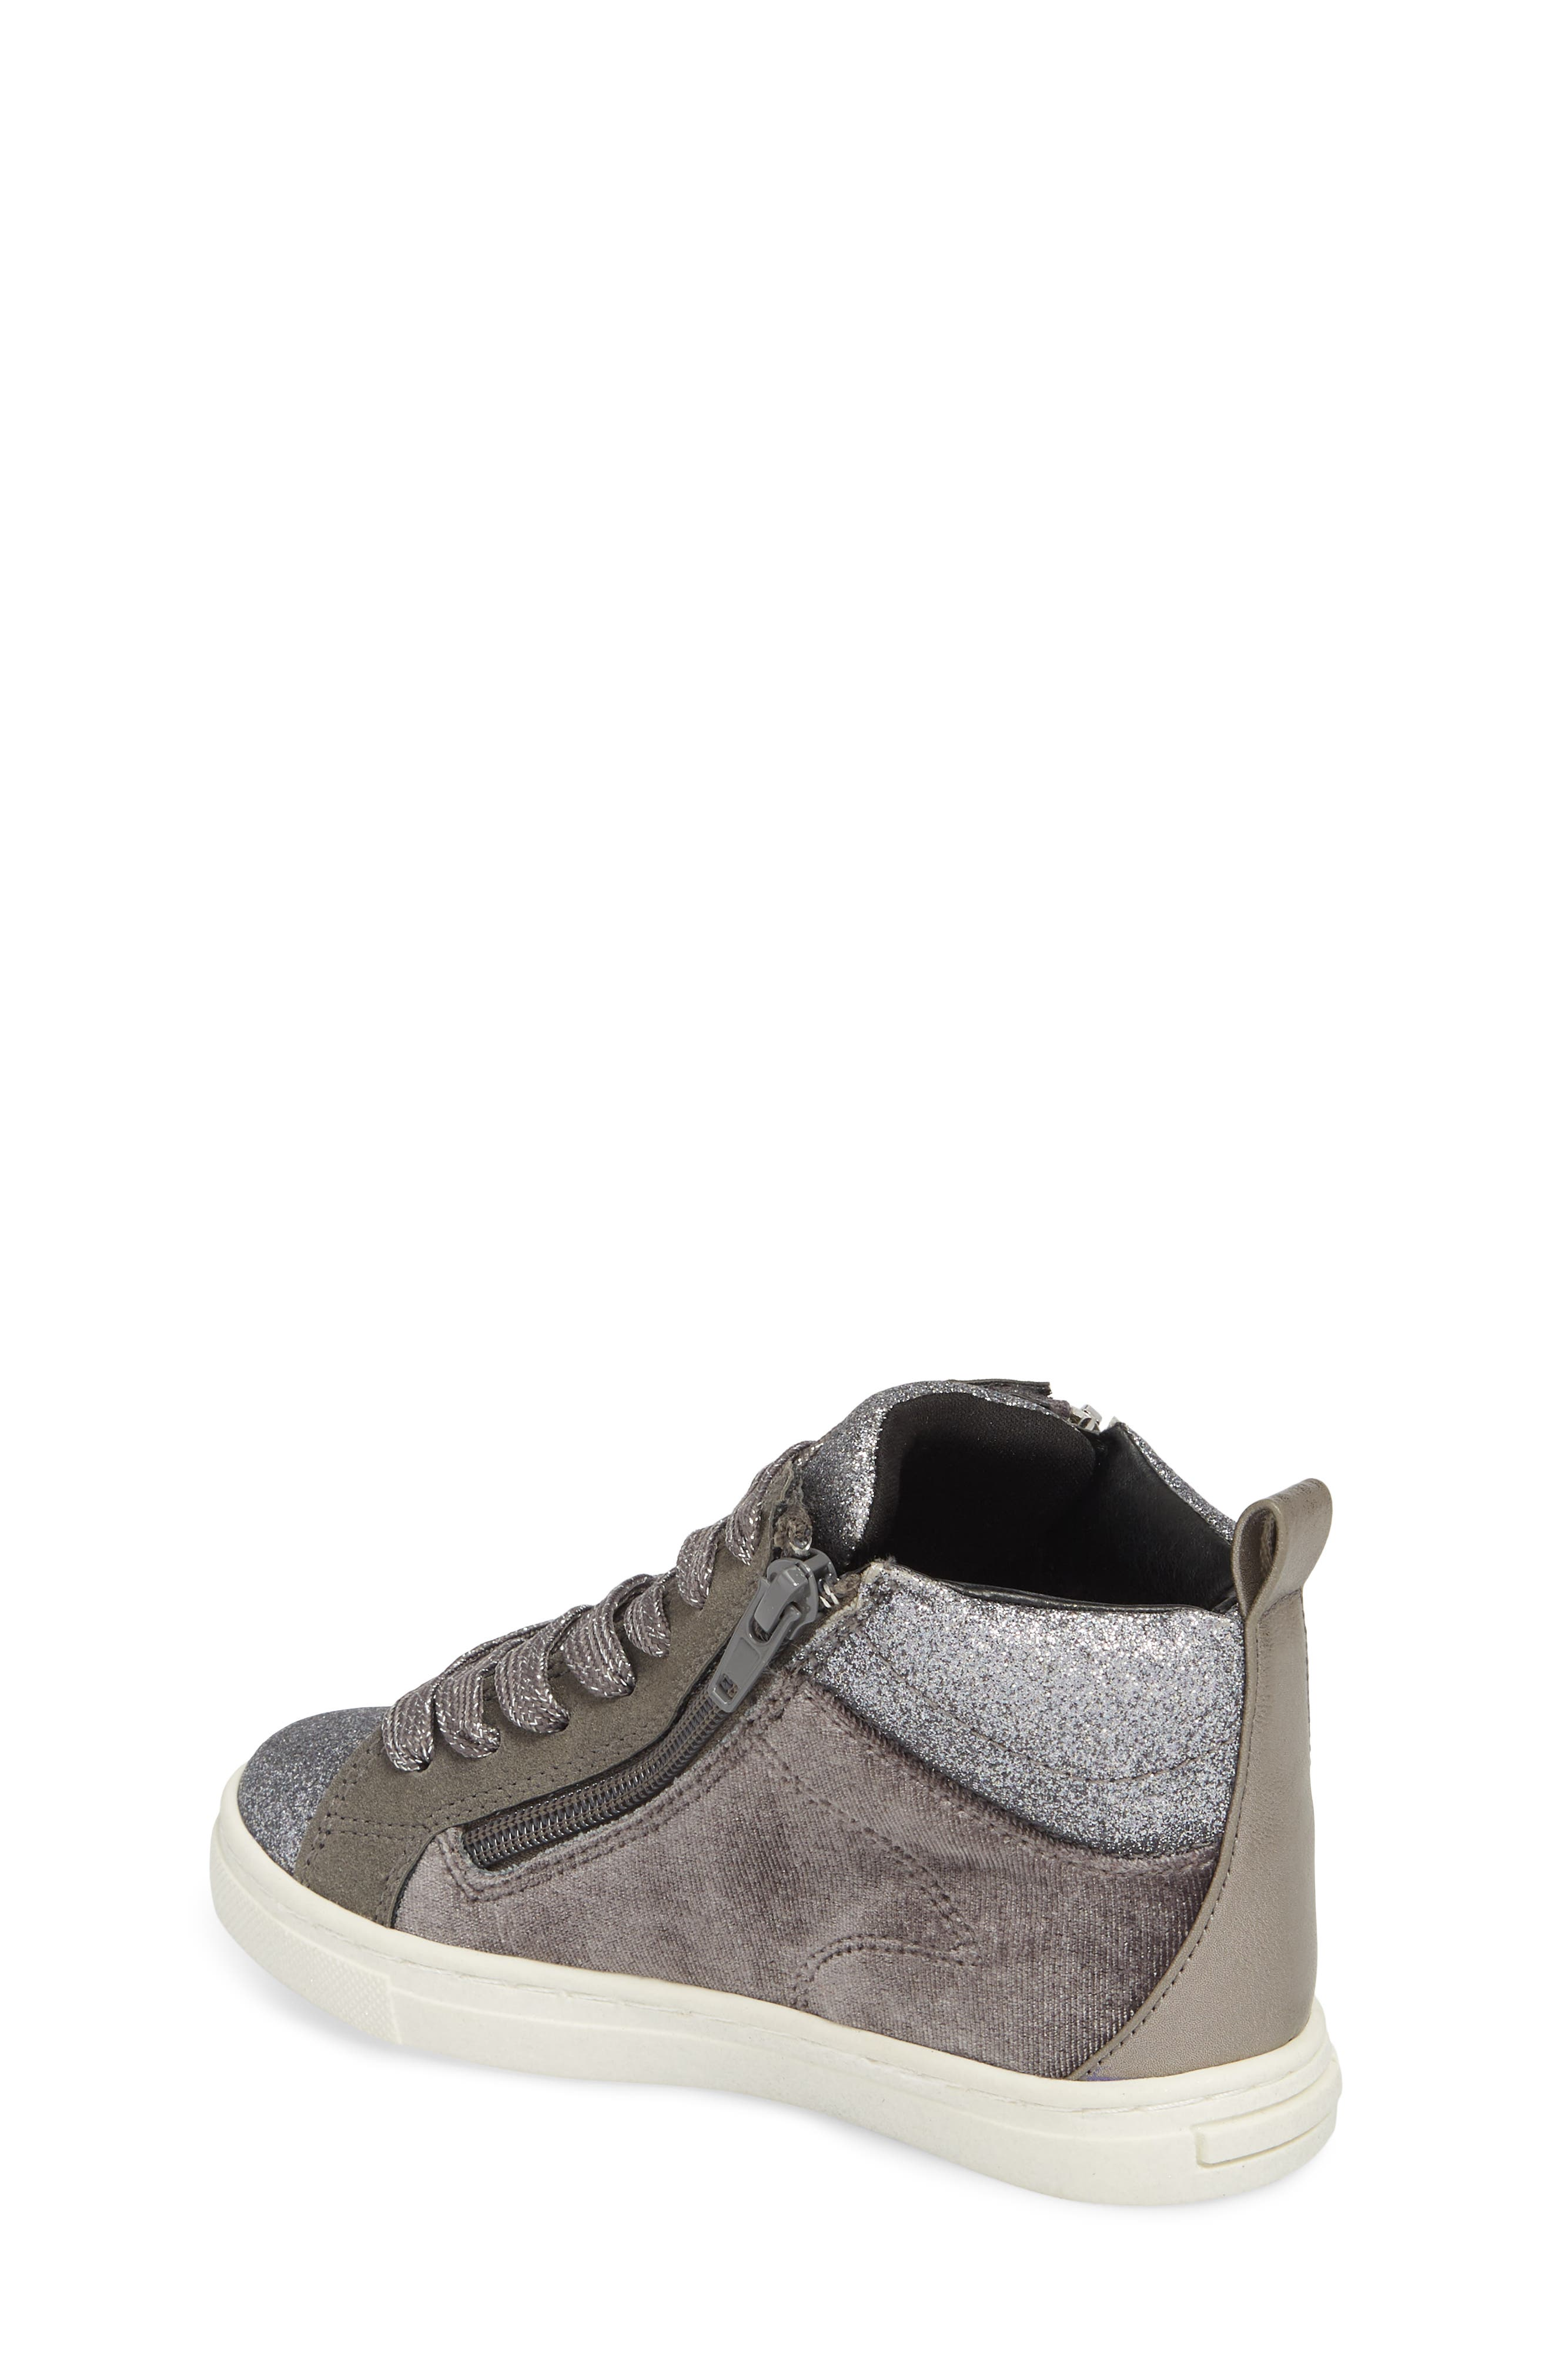 DOLCE VITA,                             Zaila Glitter High Top Sneaker,                             Alternate thumbnail 2, color,                             034